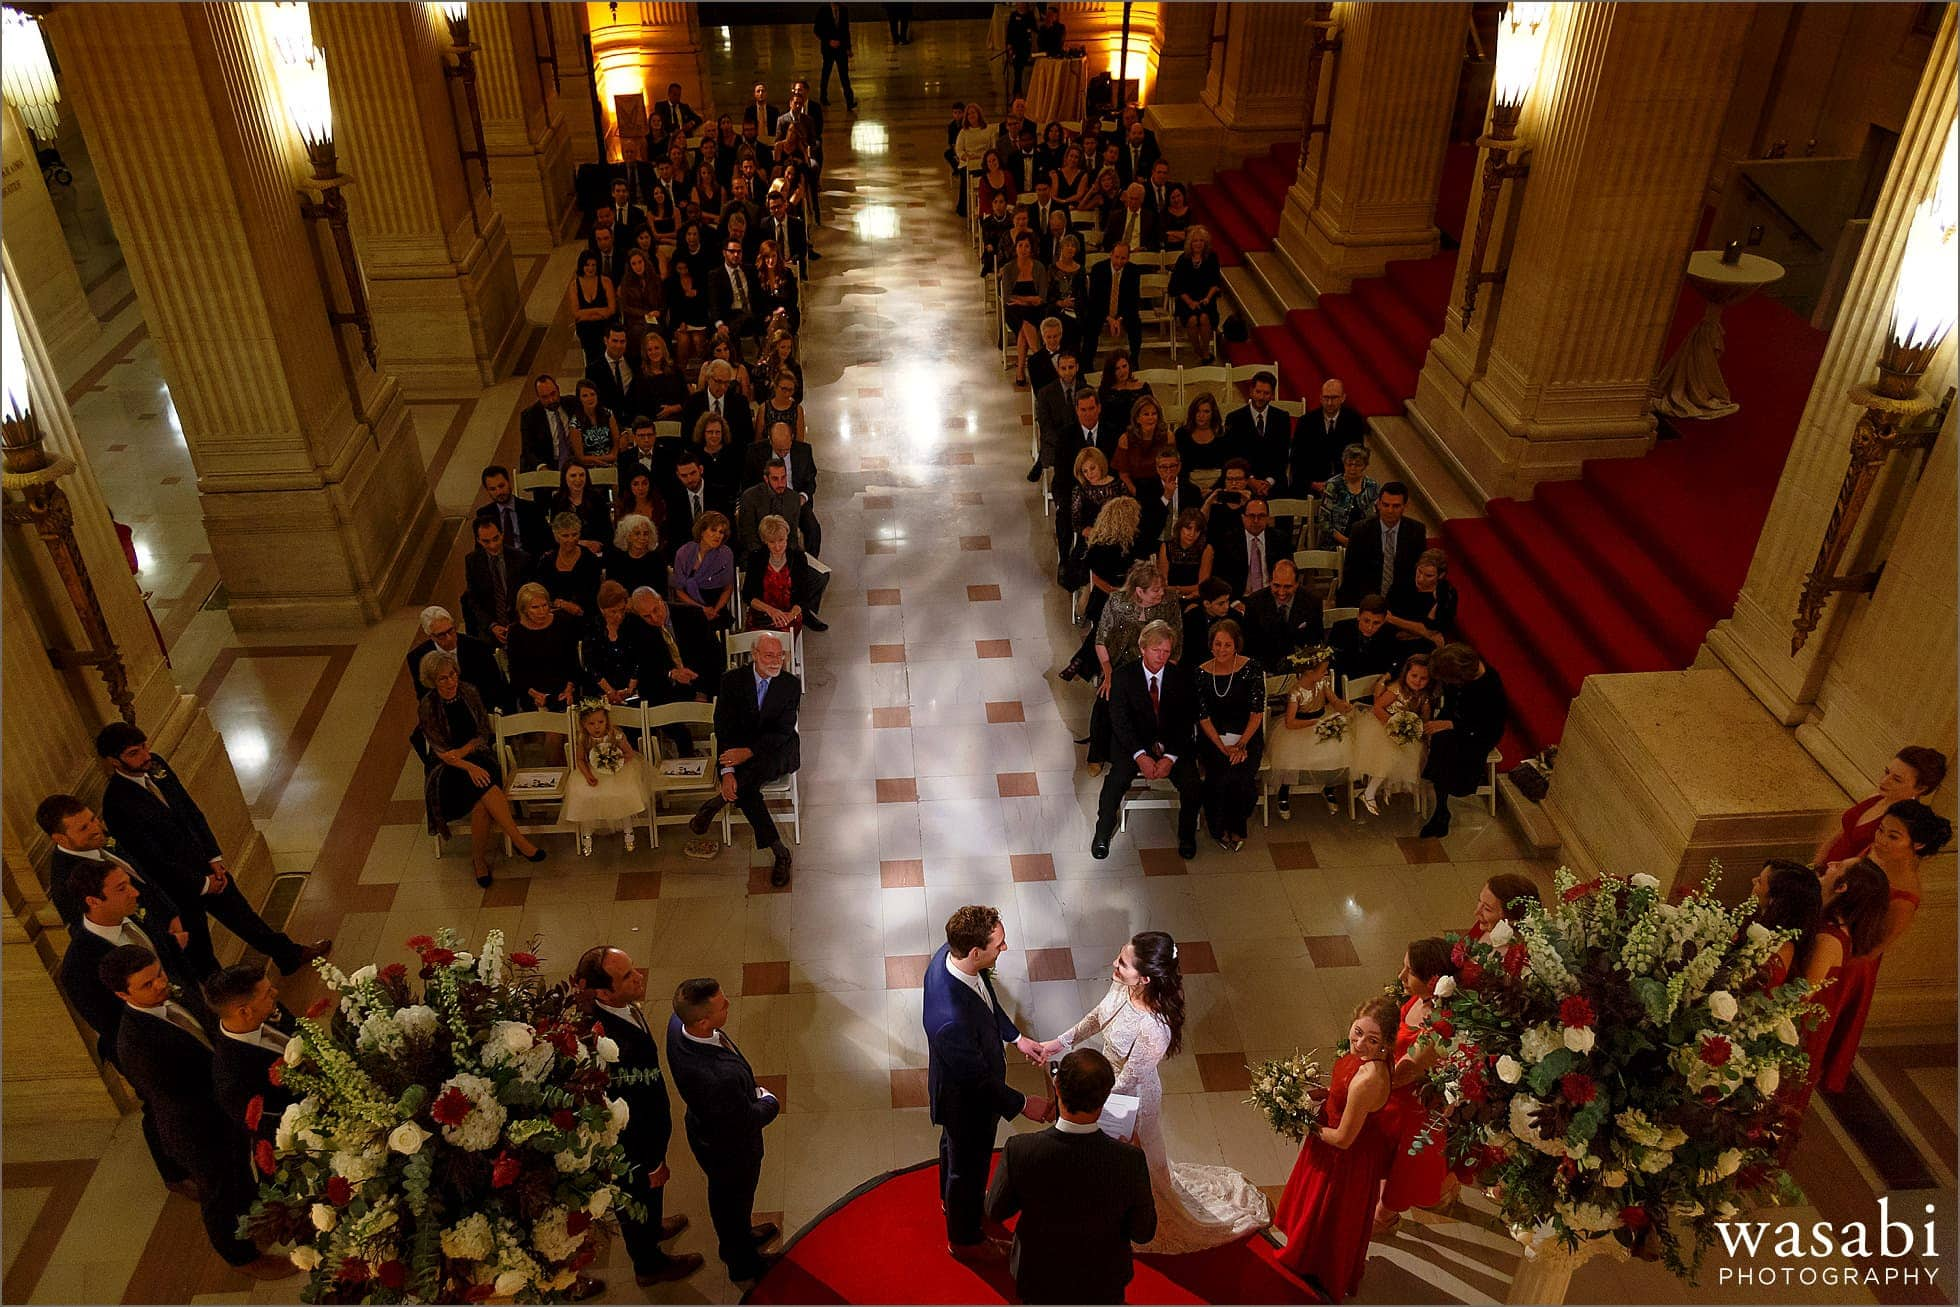 wide angle photo from balcony showing entire venue during wedding ceremony in the at Lyric Opera House Chicago wedding in Daniel F. and Ada L. Rice Grand Foyer